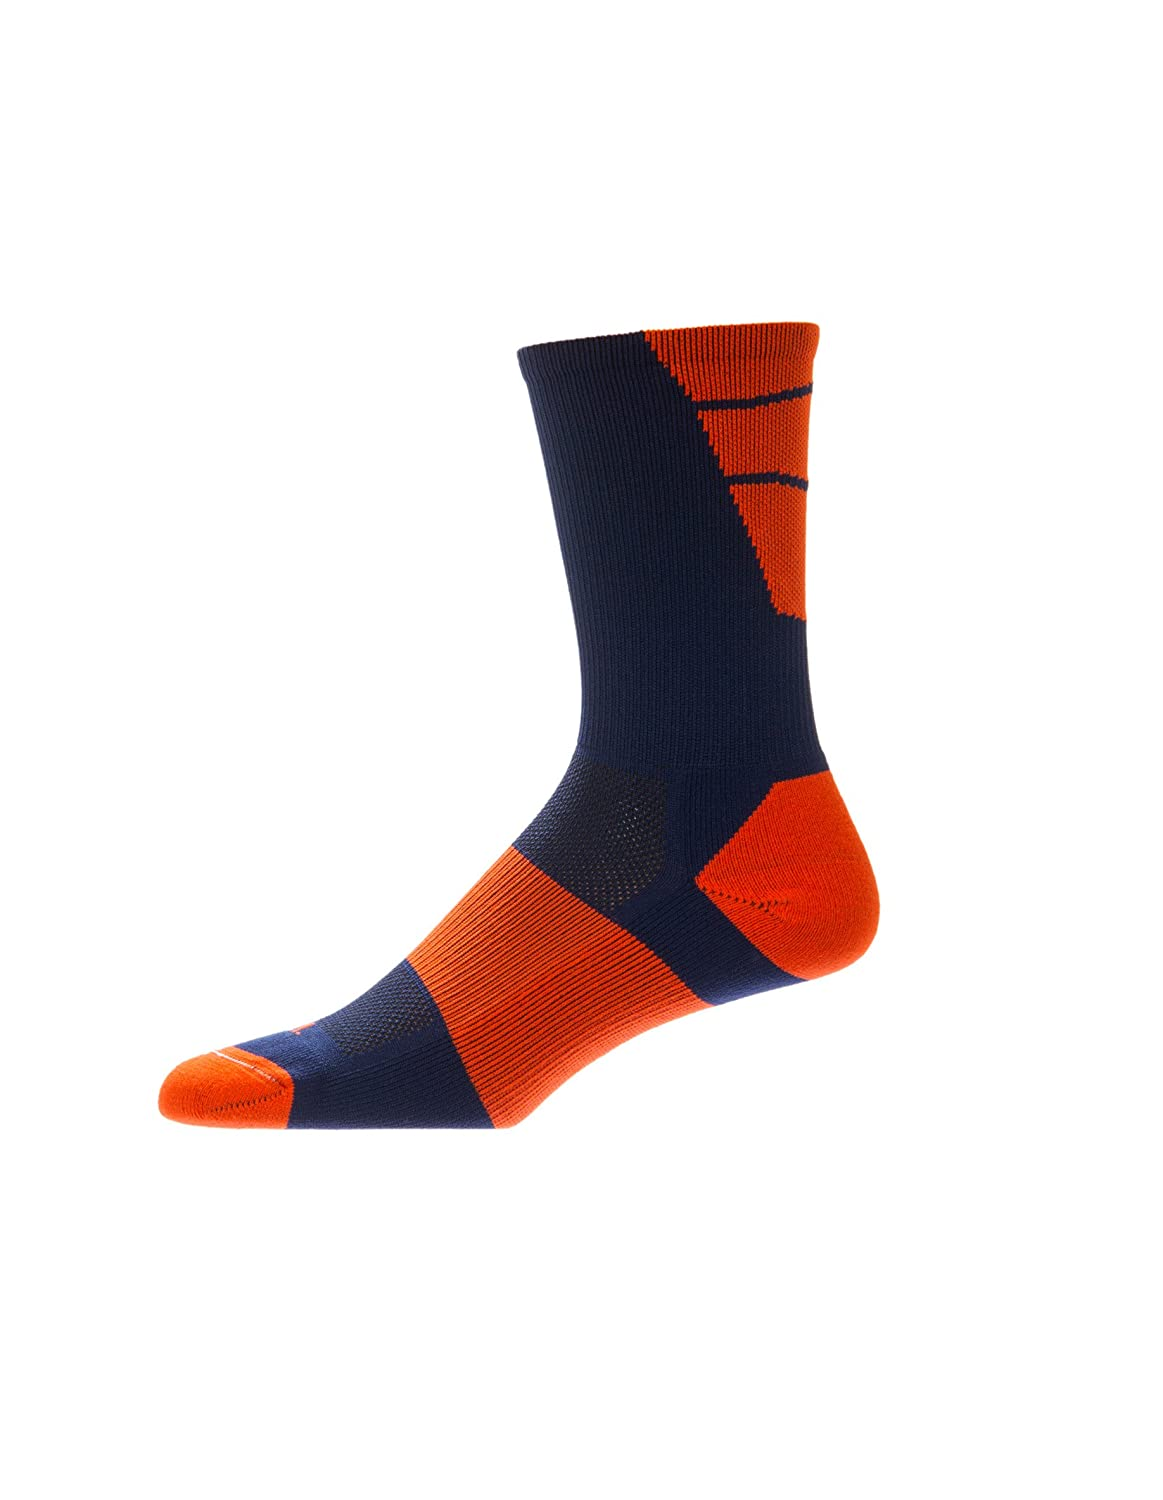 CSI Point Guard Performance Crew Socks Made In The USA Navy/Orange 6MAN6009